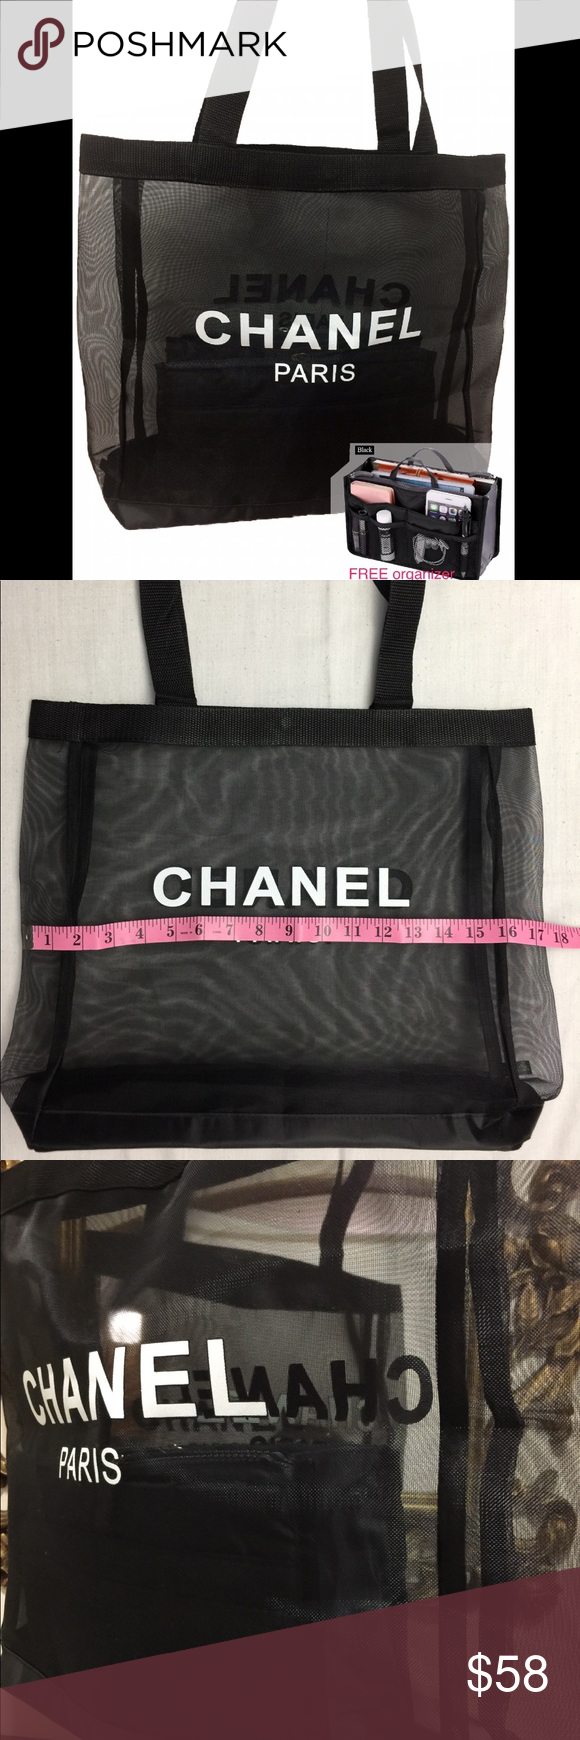 Free Organizer Chanel Vip Tote Gift Bag Brand New Large Mesh W